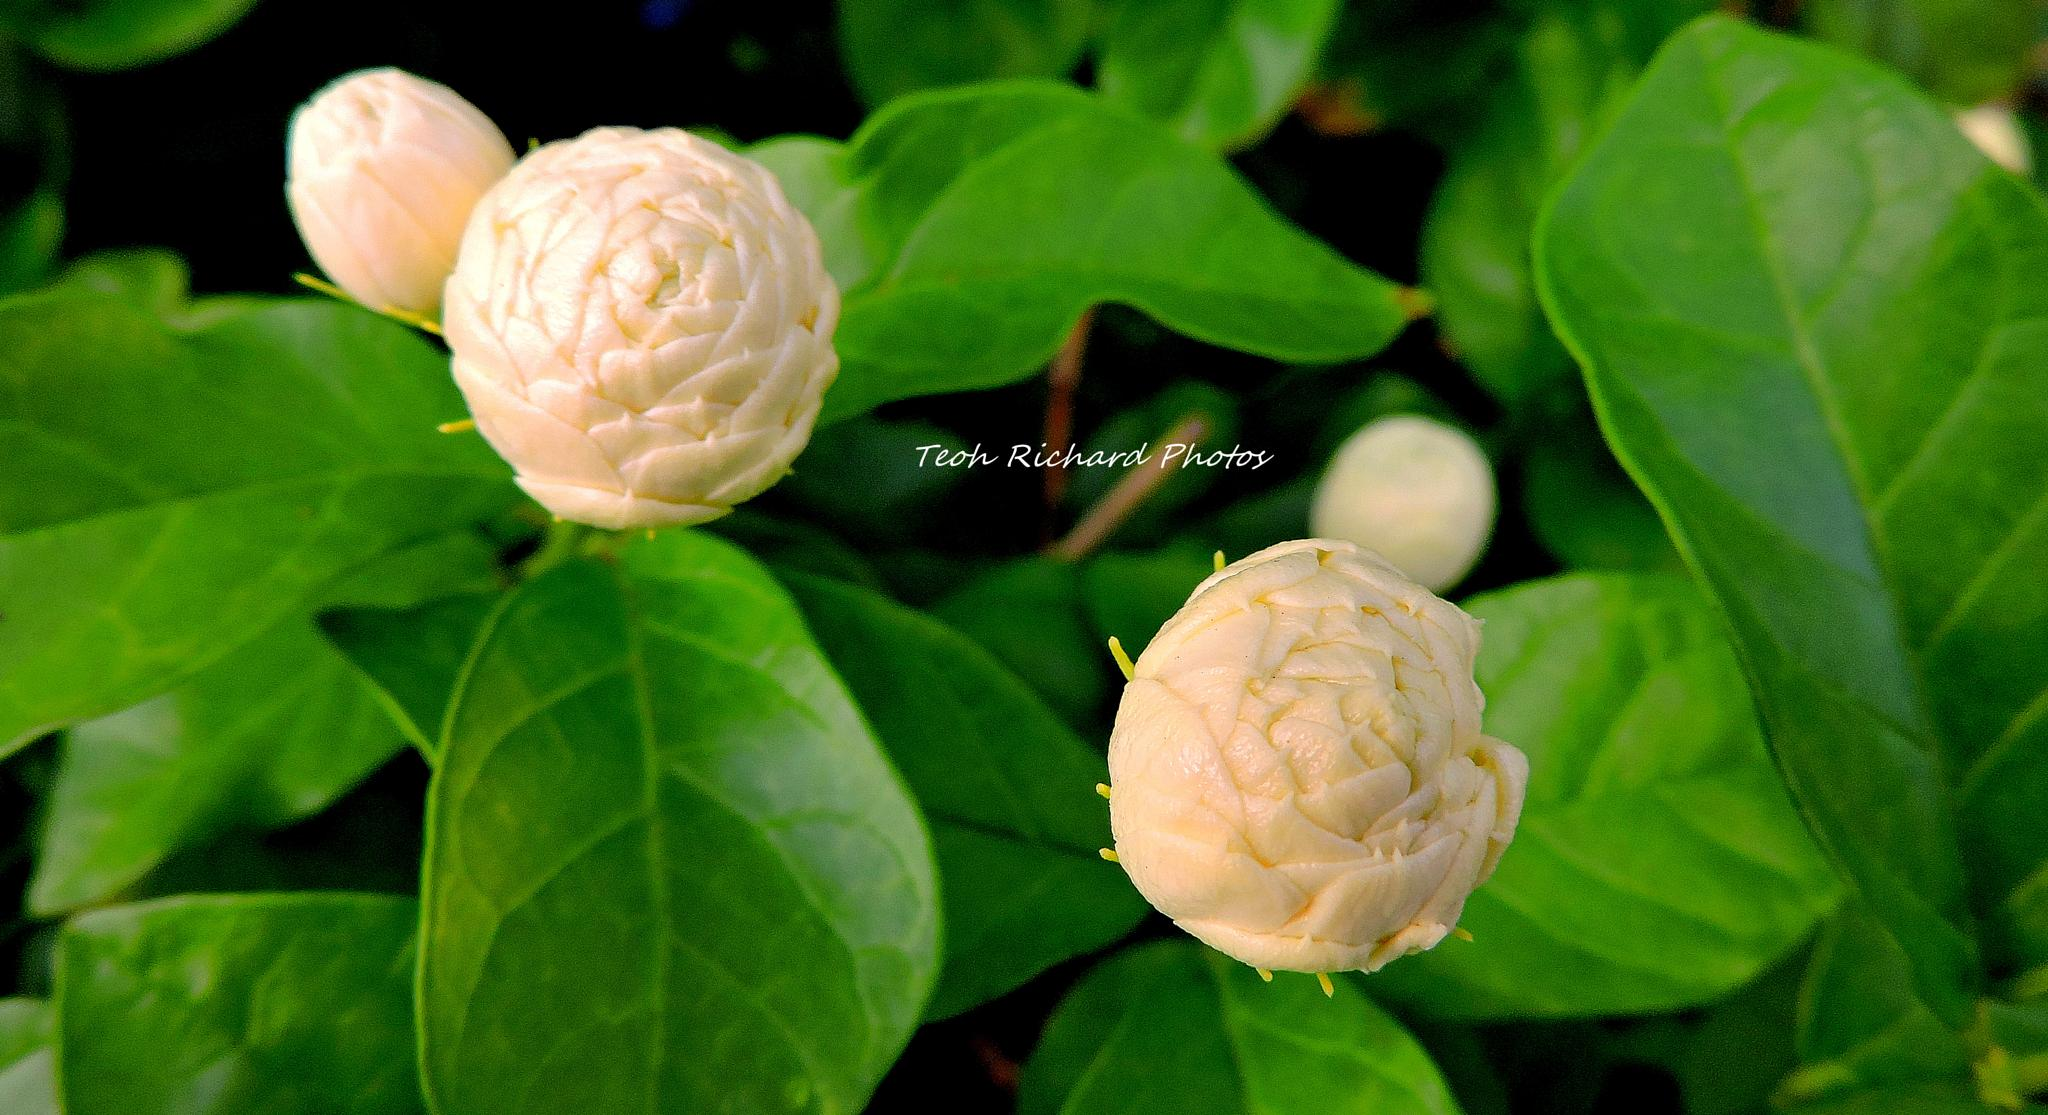 The Buds 2 by teoh.richard.15